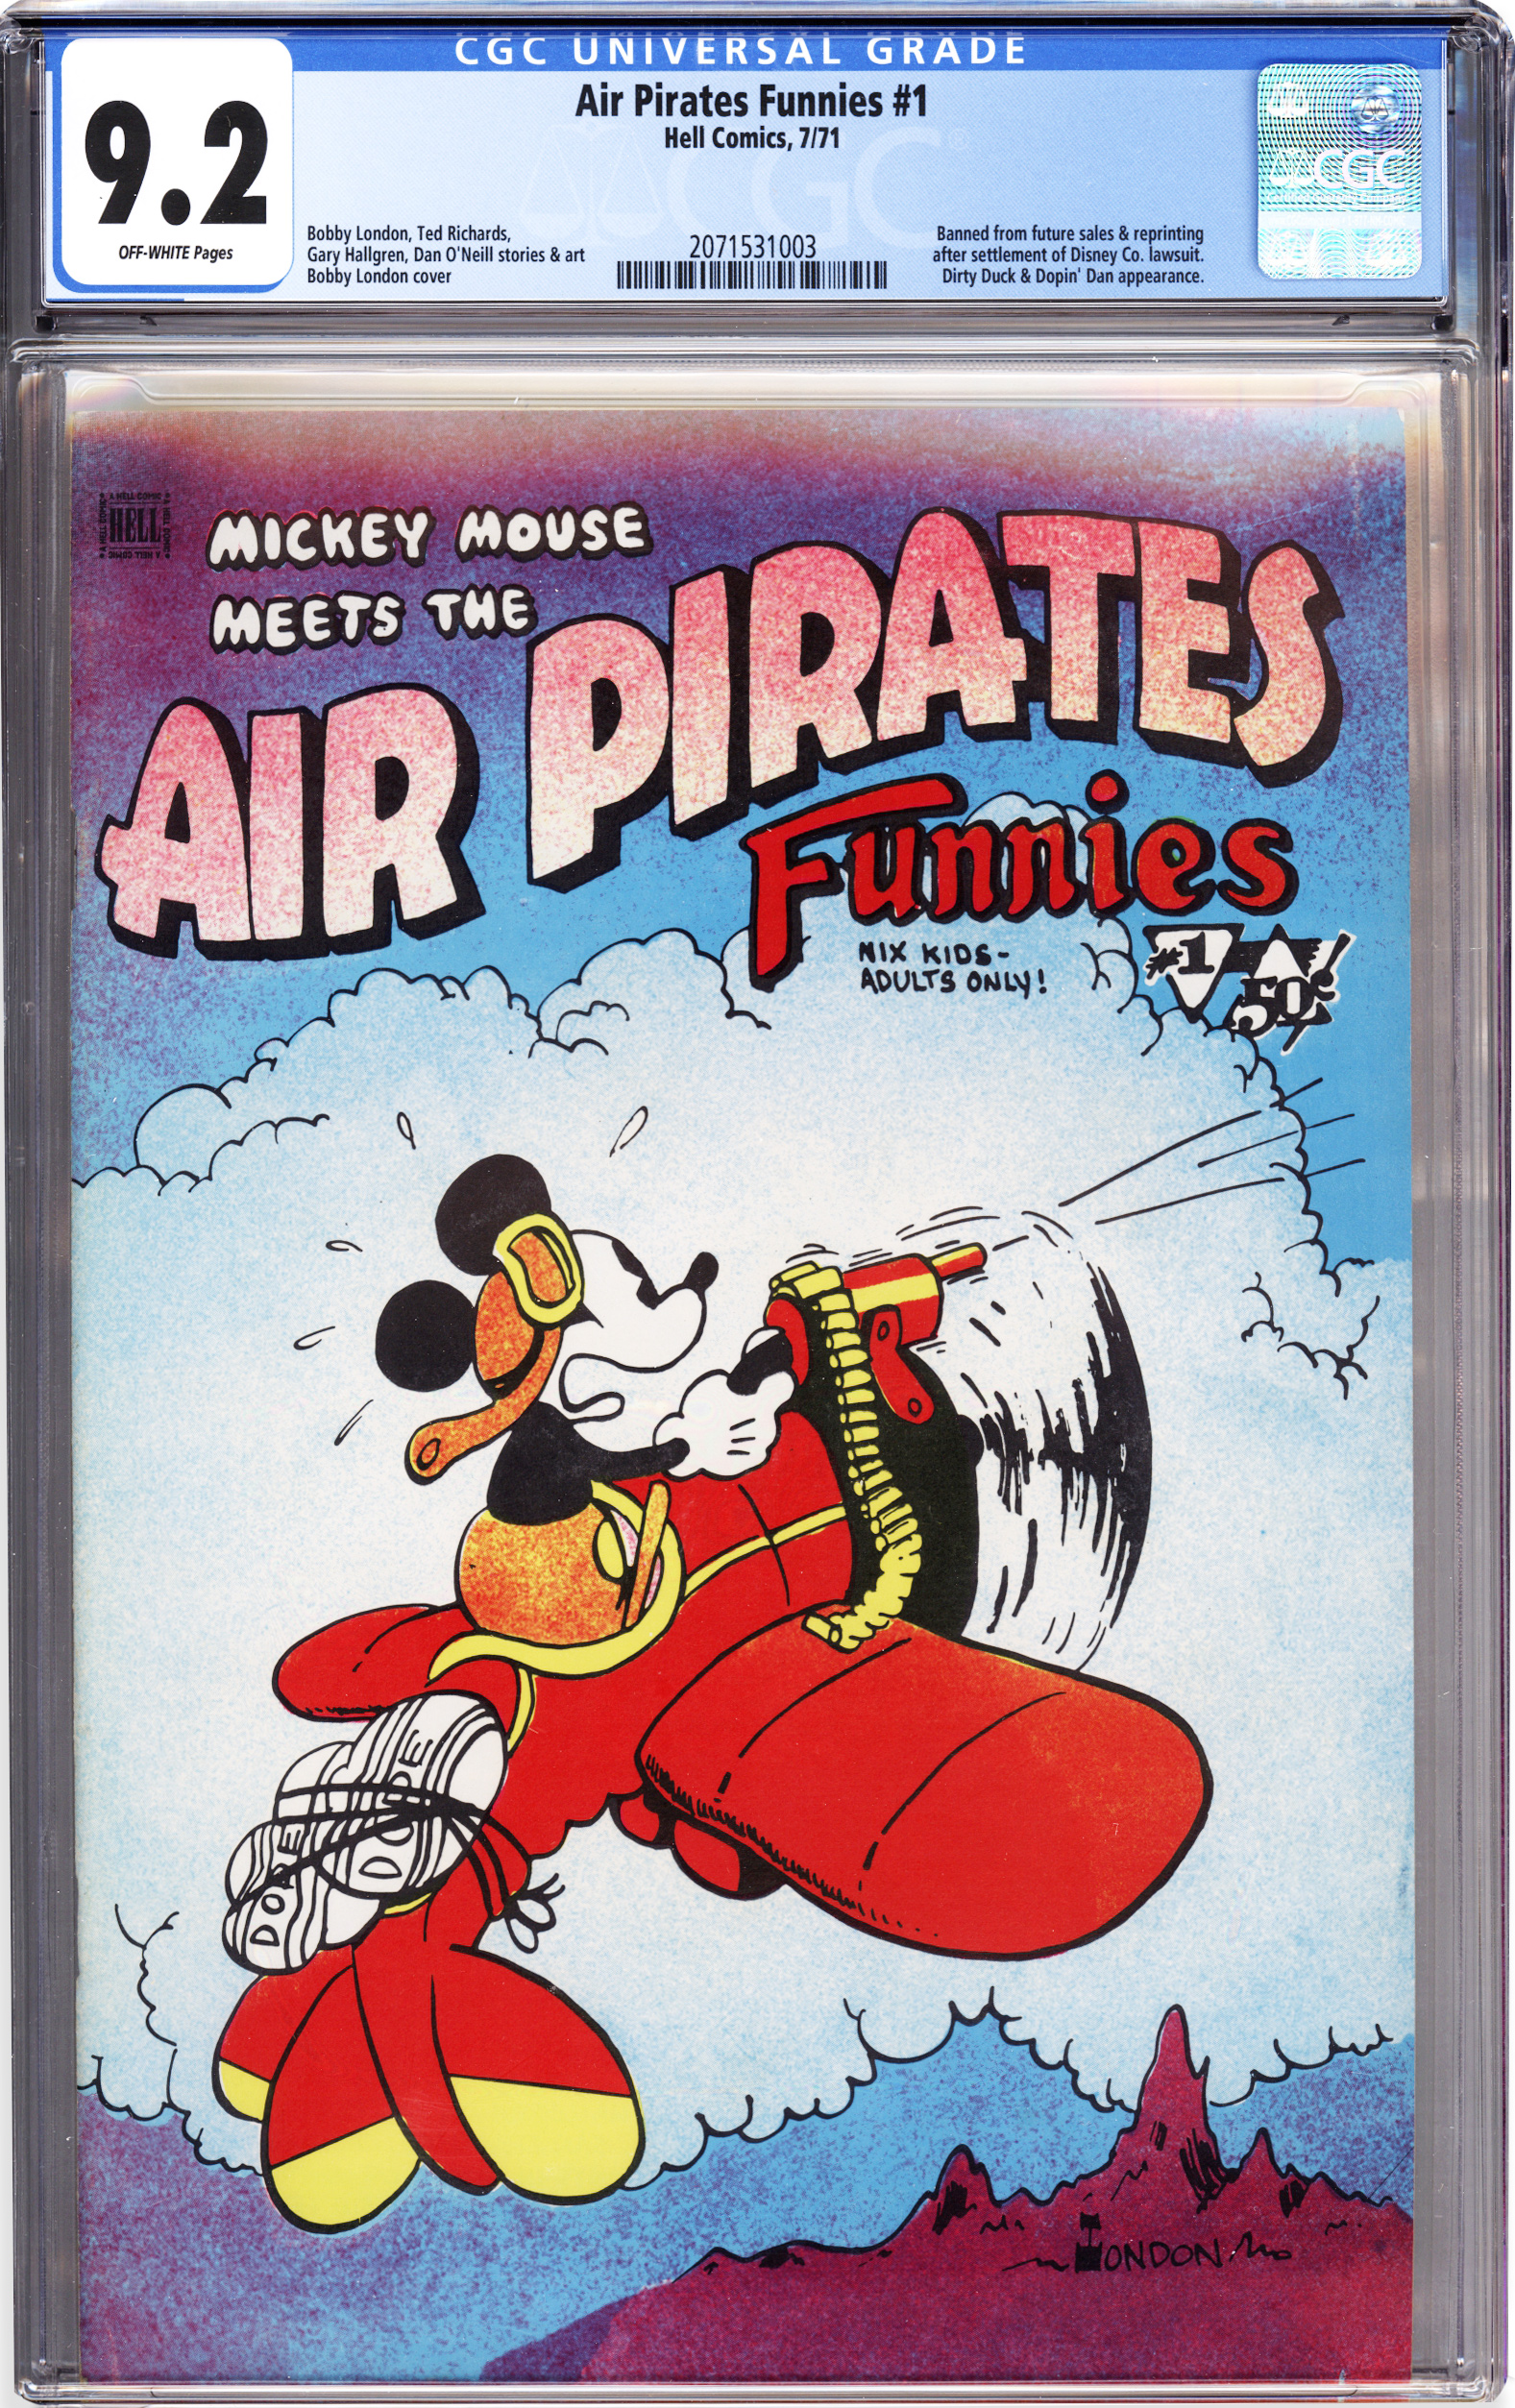 AIR PIRATES FUNNIES